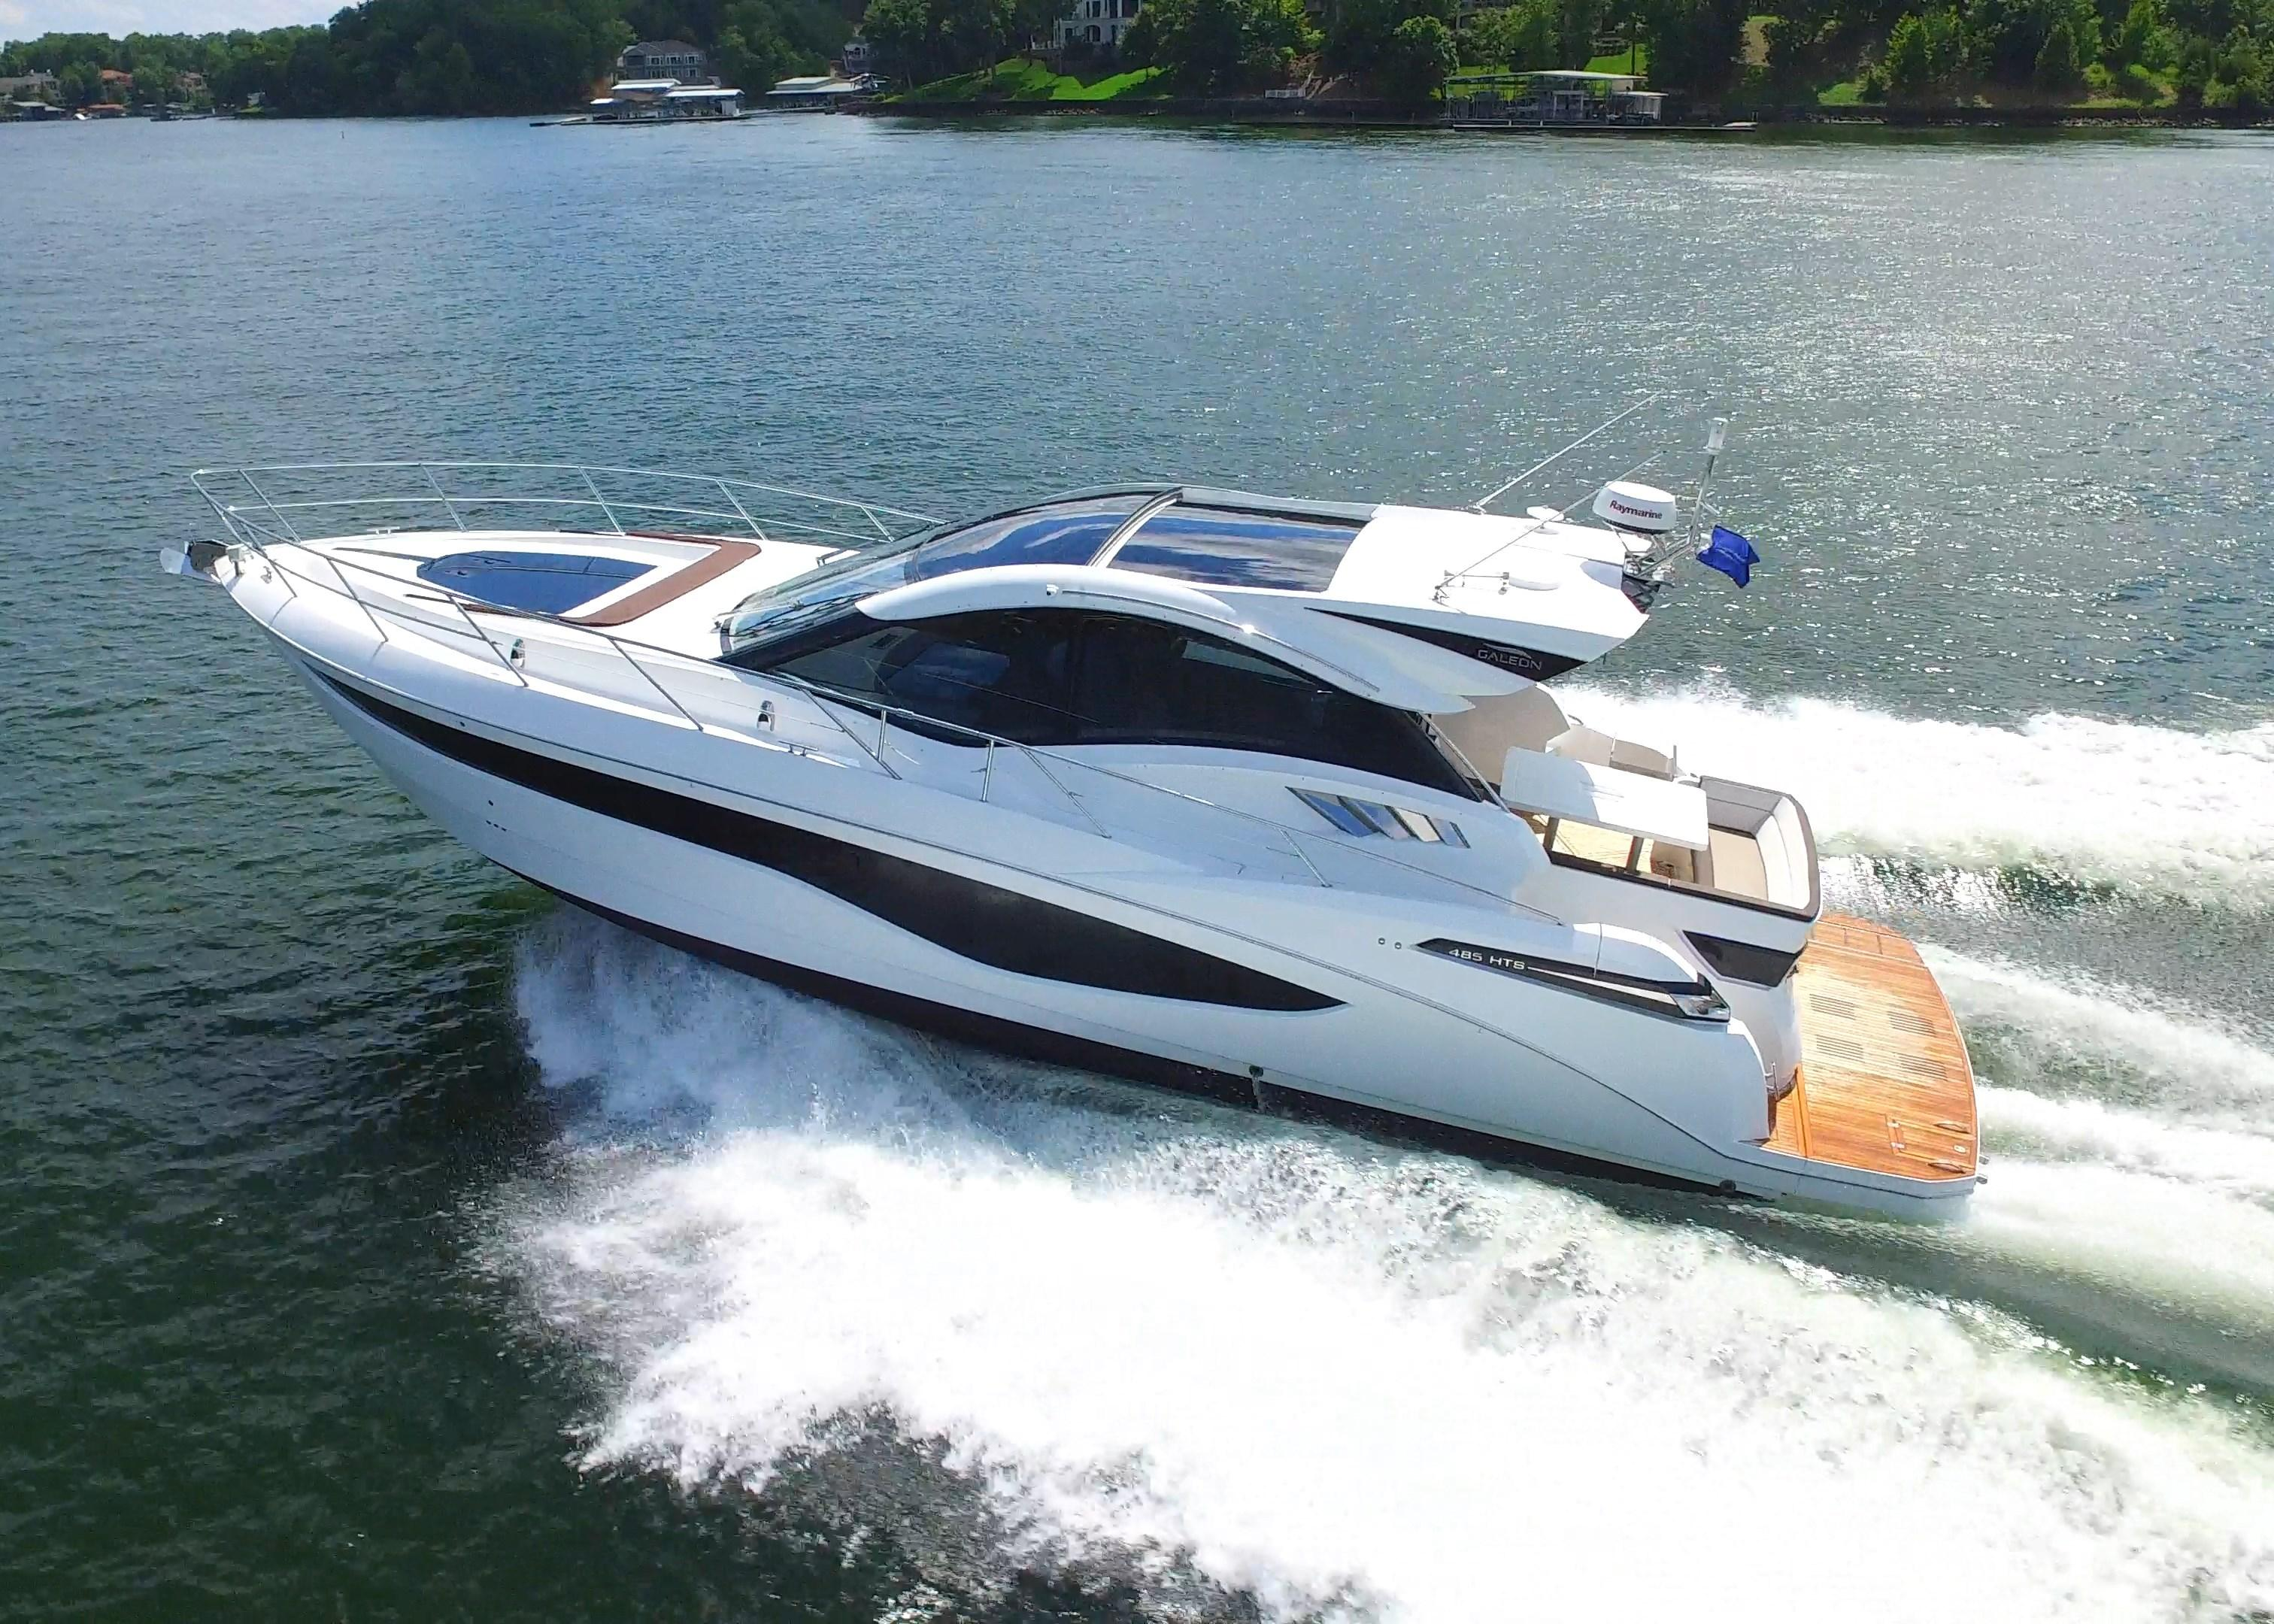 2018 Galeon 485 HTS Power Boat For Sale Wwwyachtworldcom